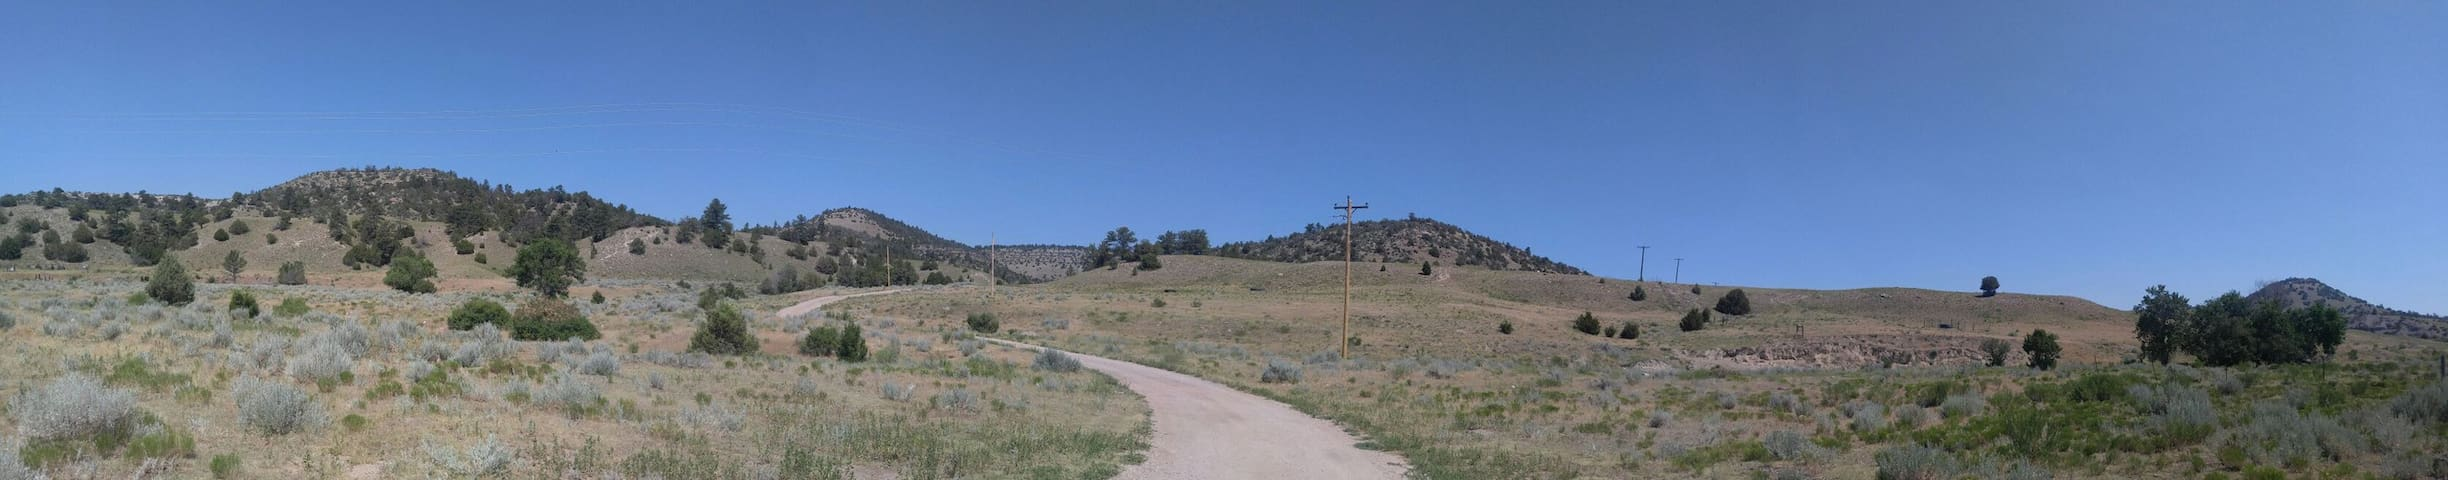 IT'S AVAILABLE: ECLIPSE Tent Site in SE Wyoming!